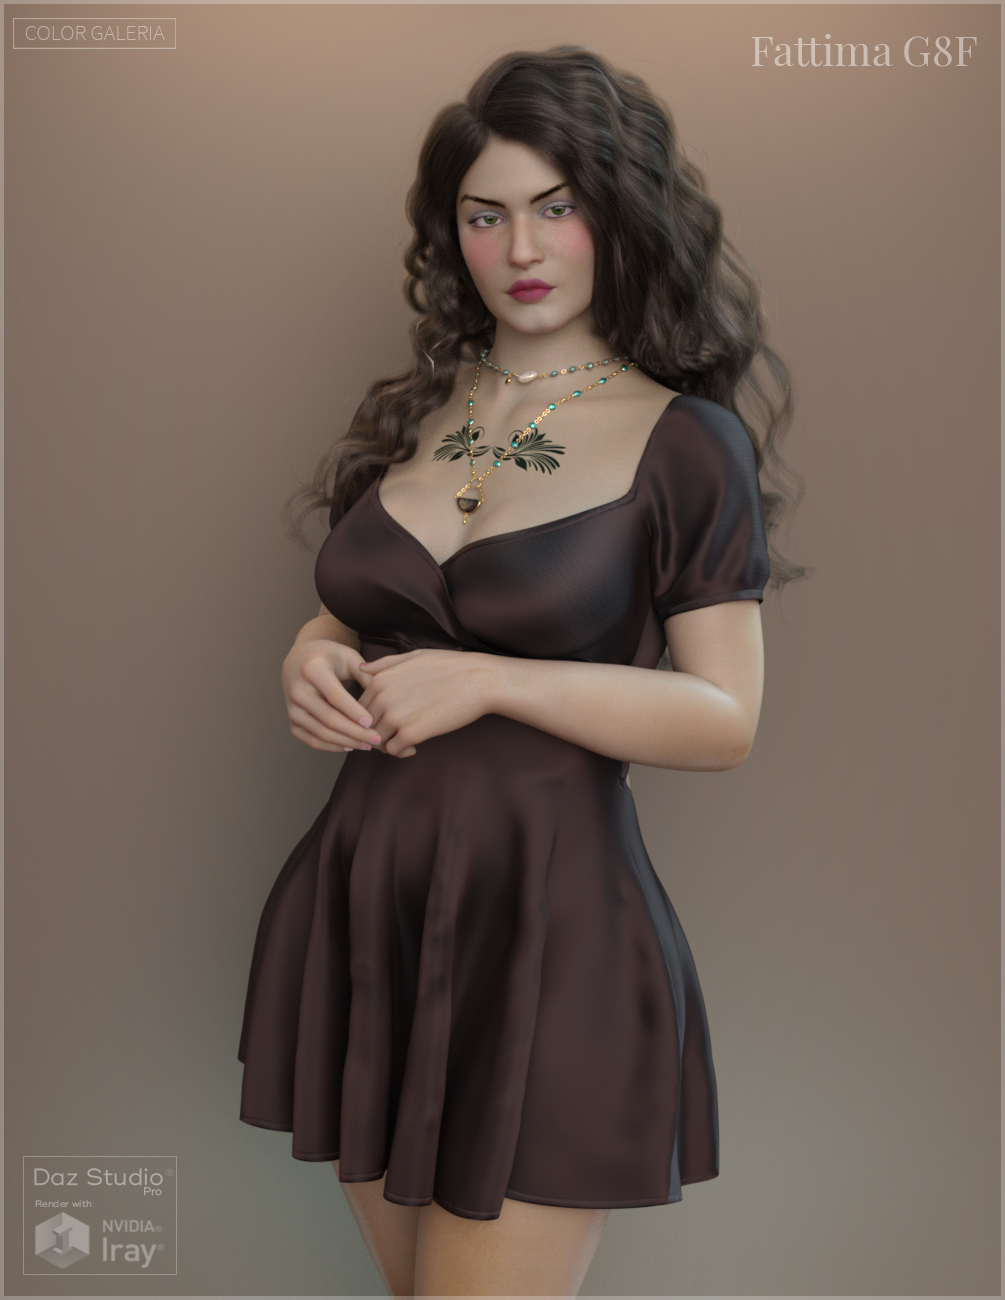 Fattima for Genesis 8 Female